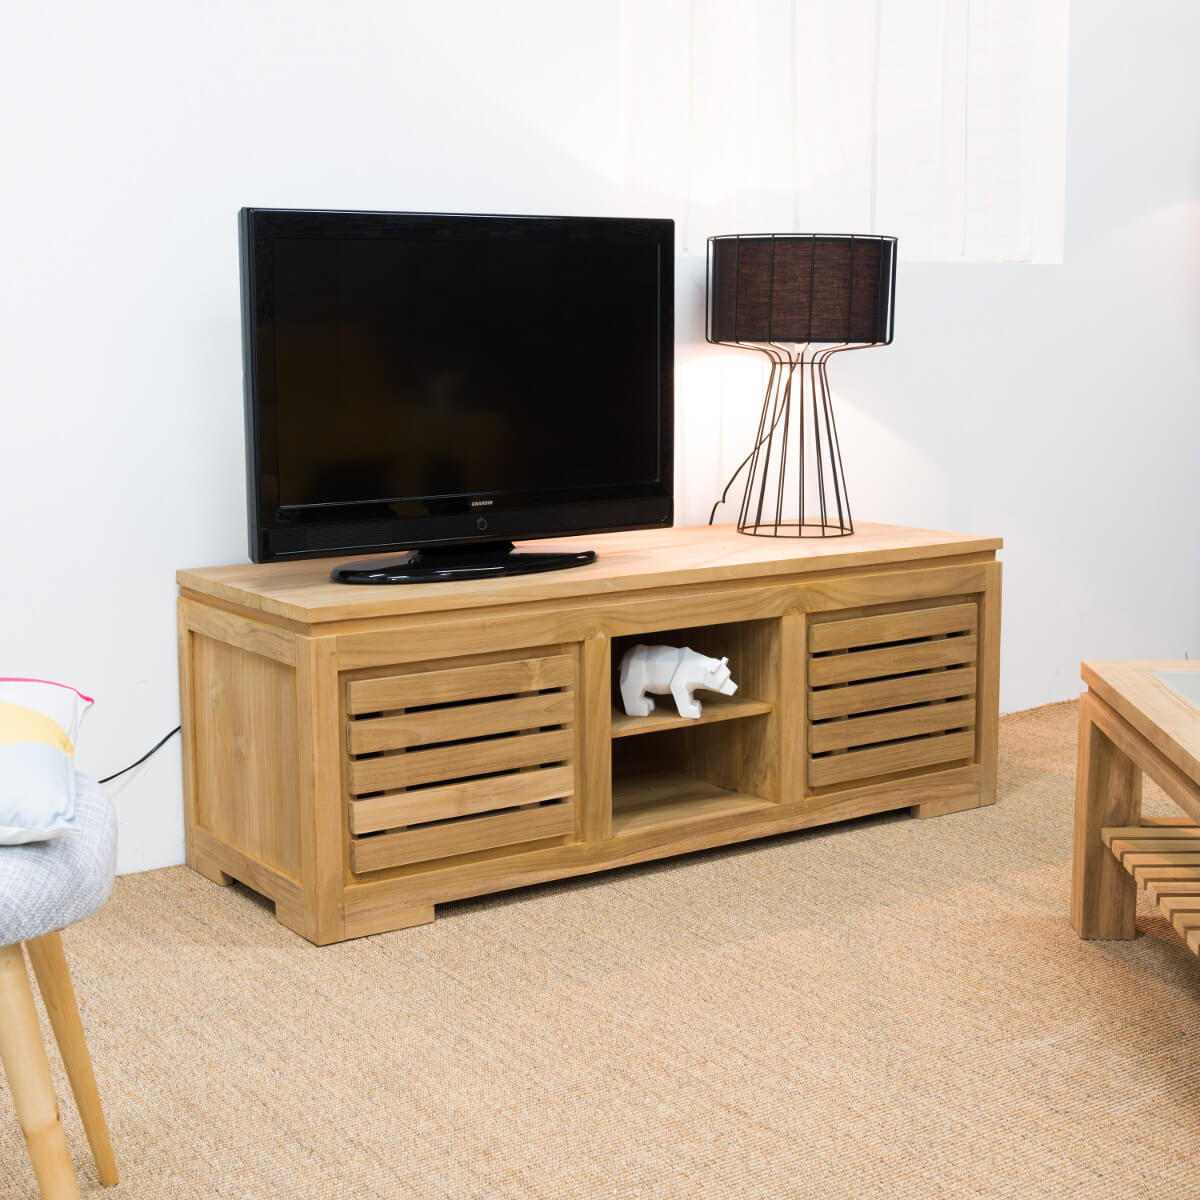 Meuble tv de salon en bois de teck massif zen rectangle - Meuble tv teck massif ...